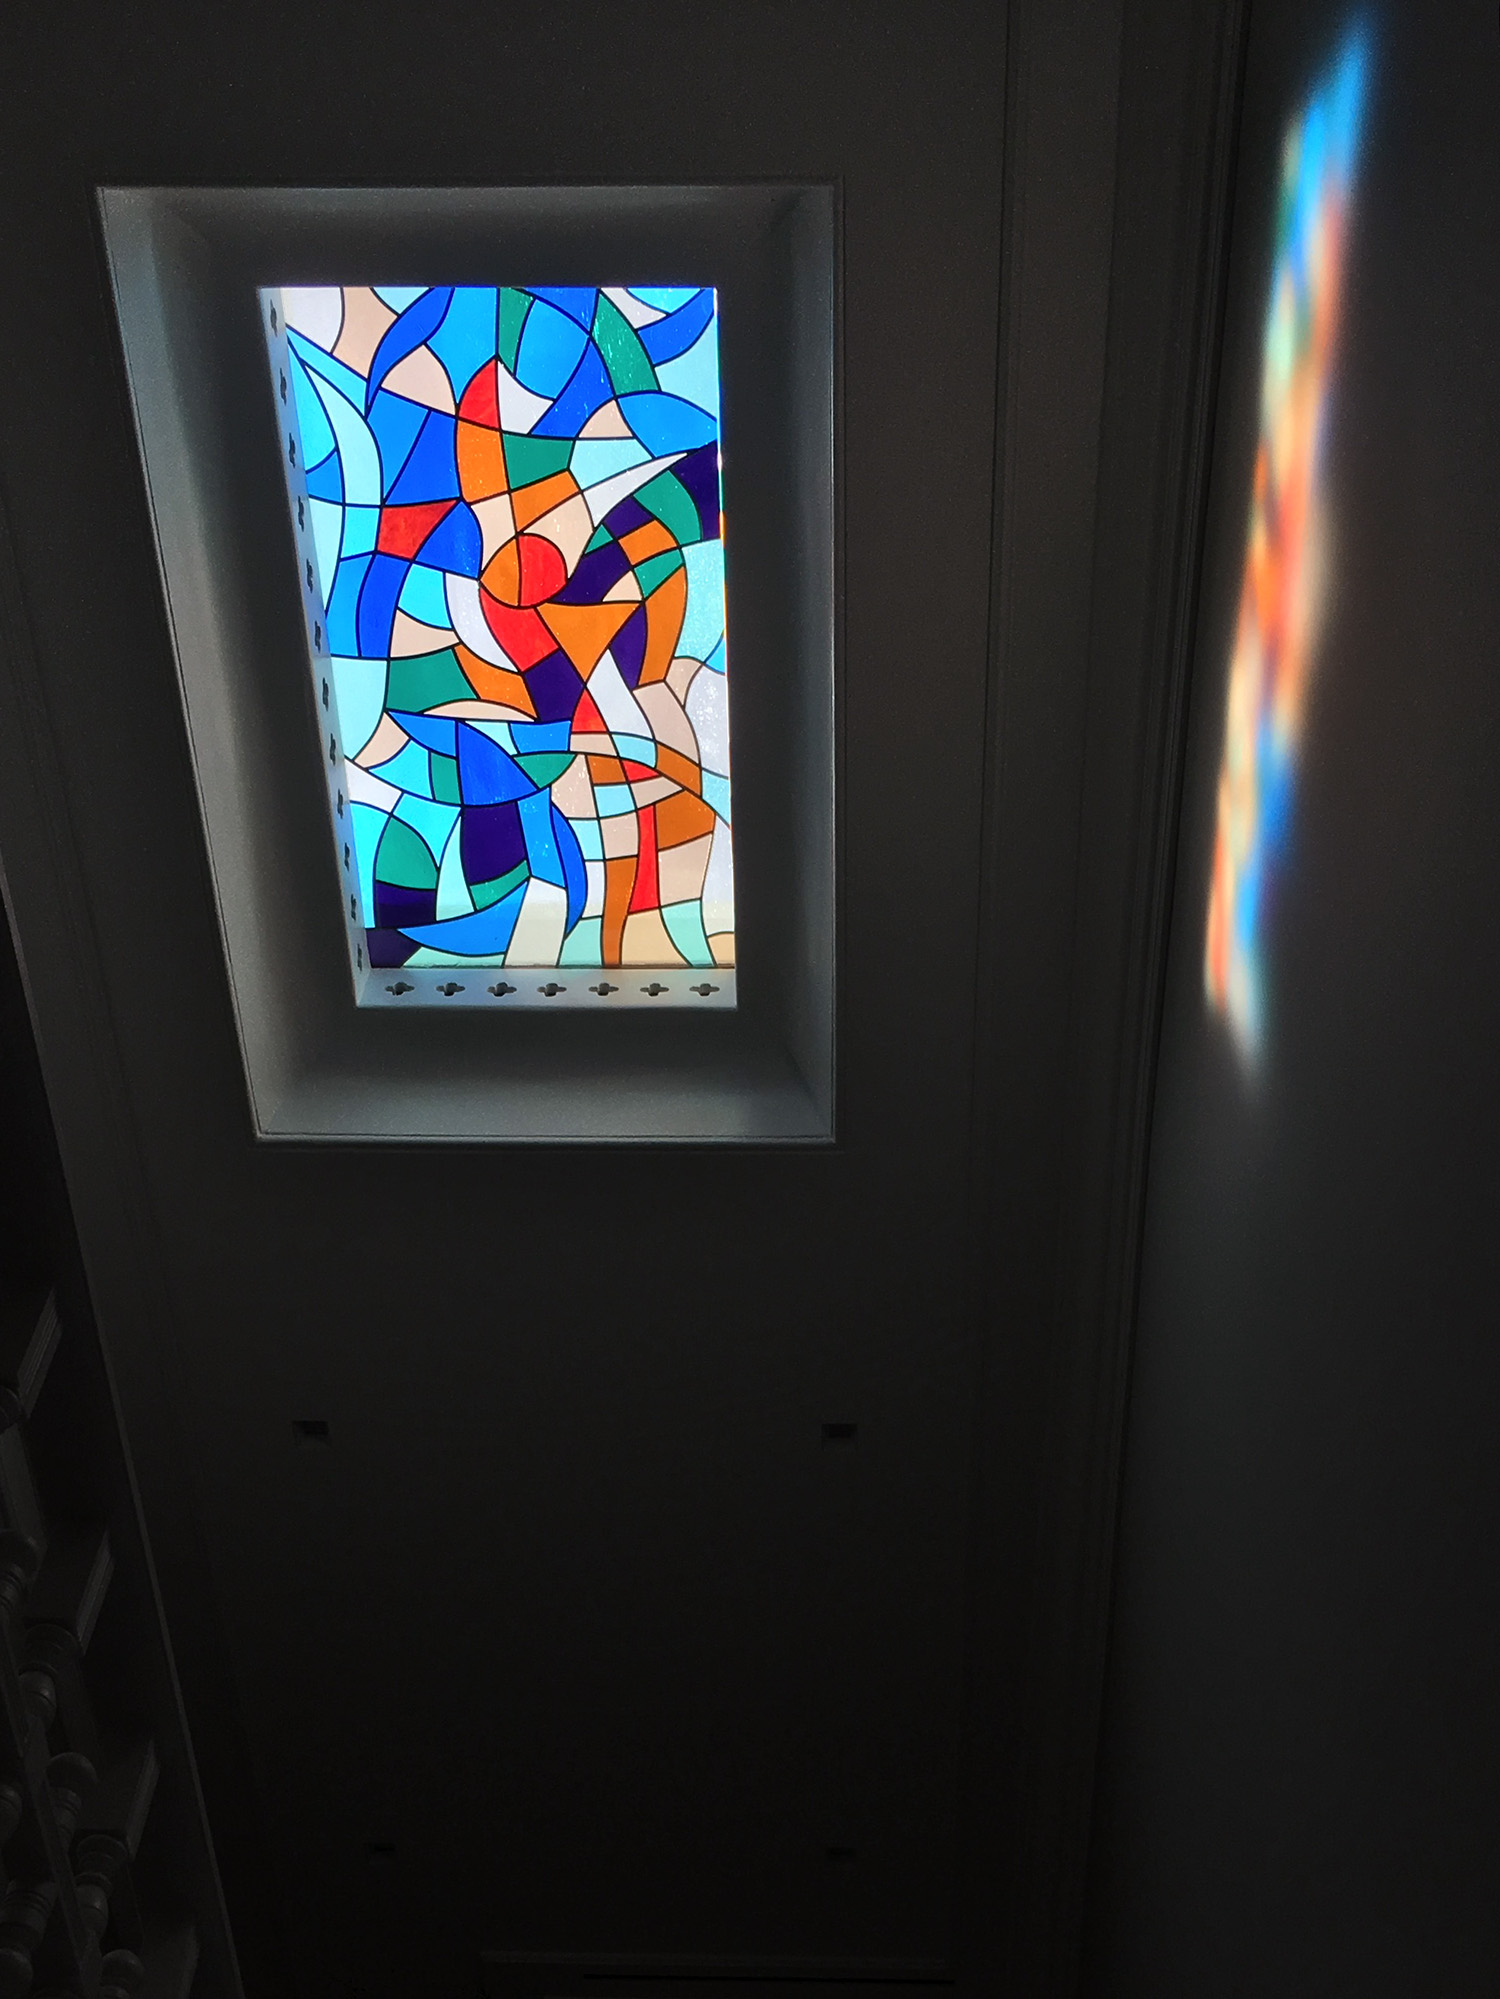 abstract+stained+glass+skylight+palo+alto+atherton+menlo+park+san+jose+san+francisco+bay+area+legacy+glass.jpg